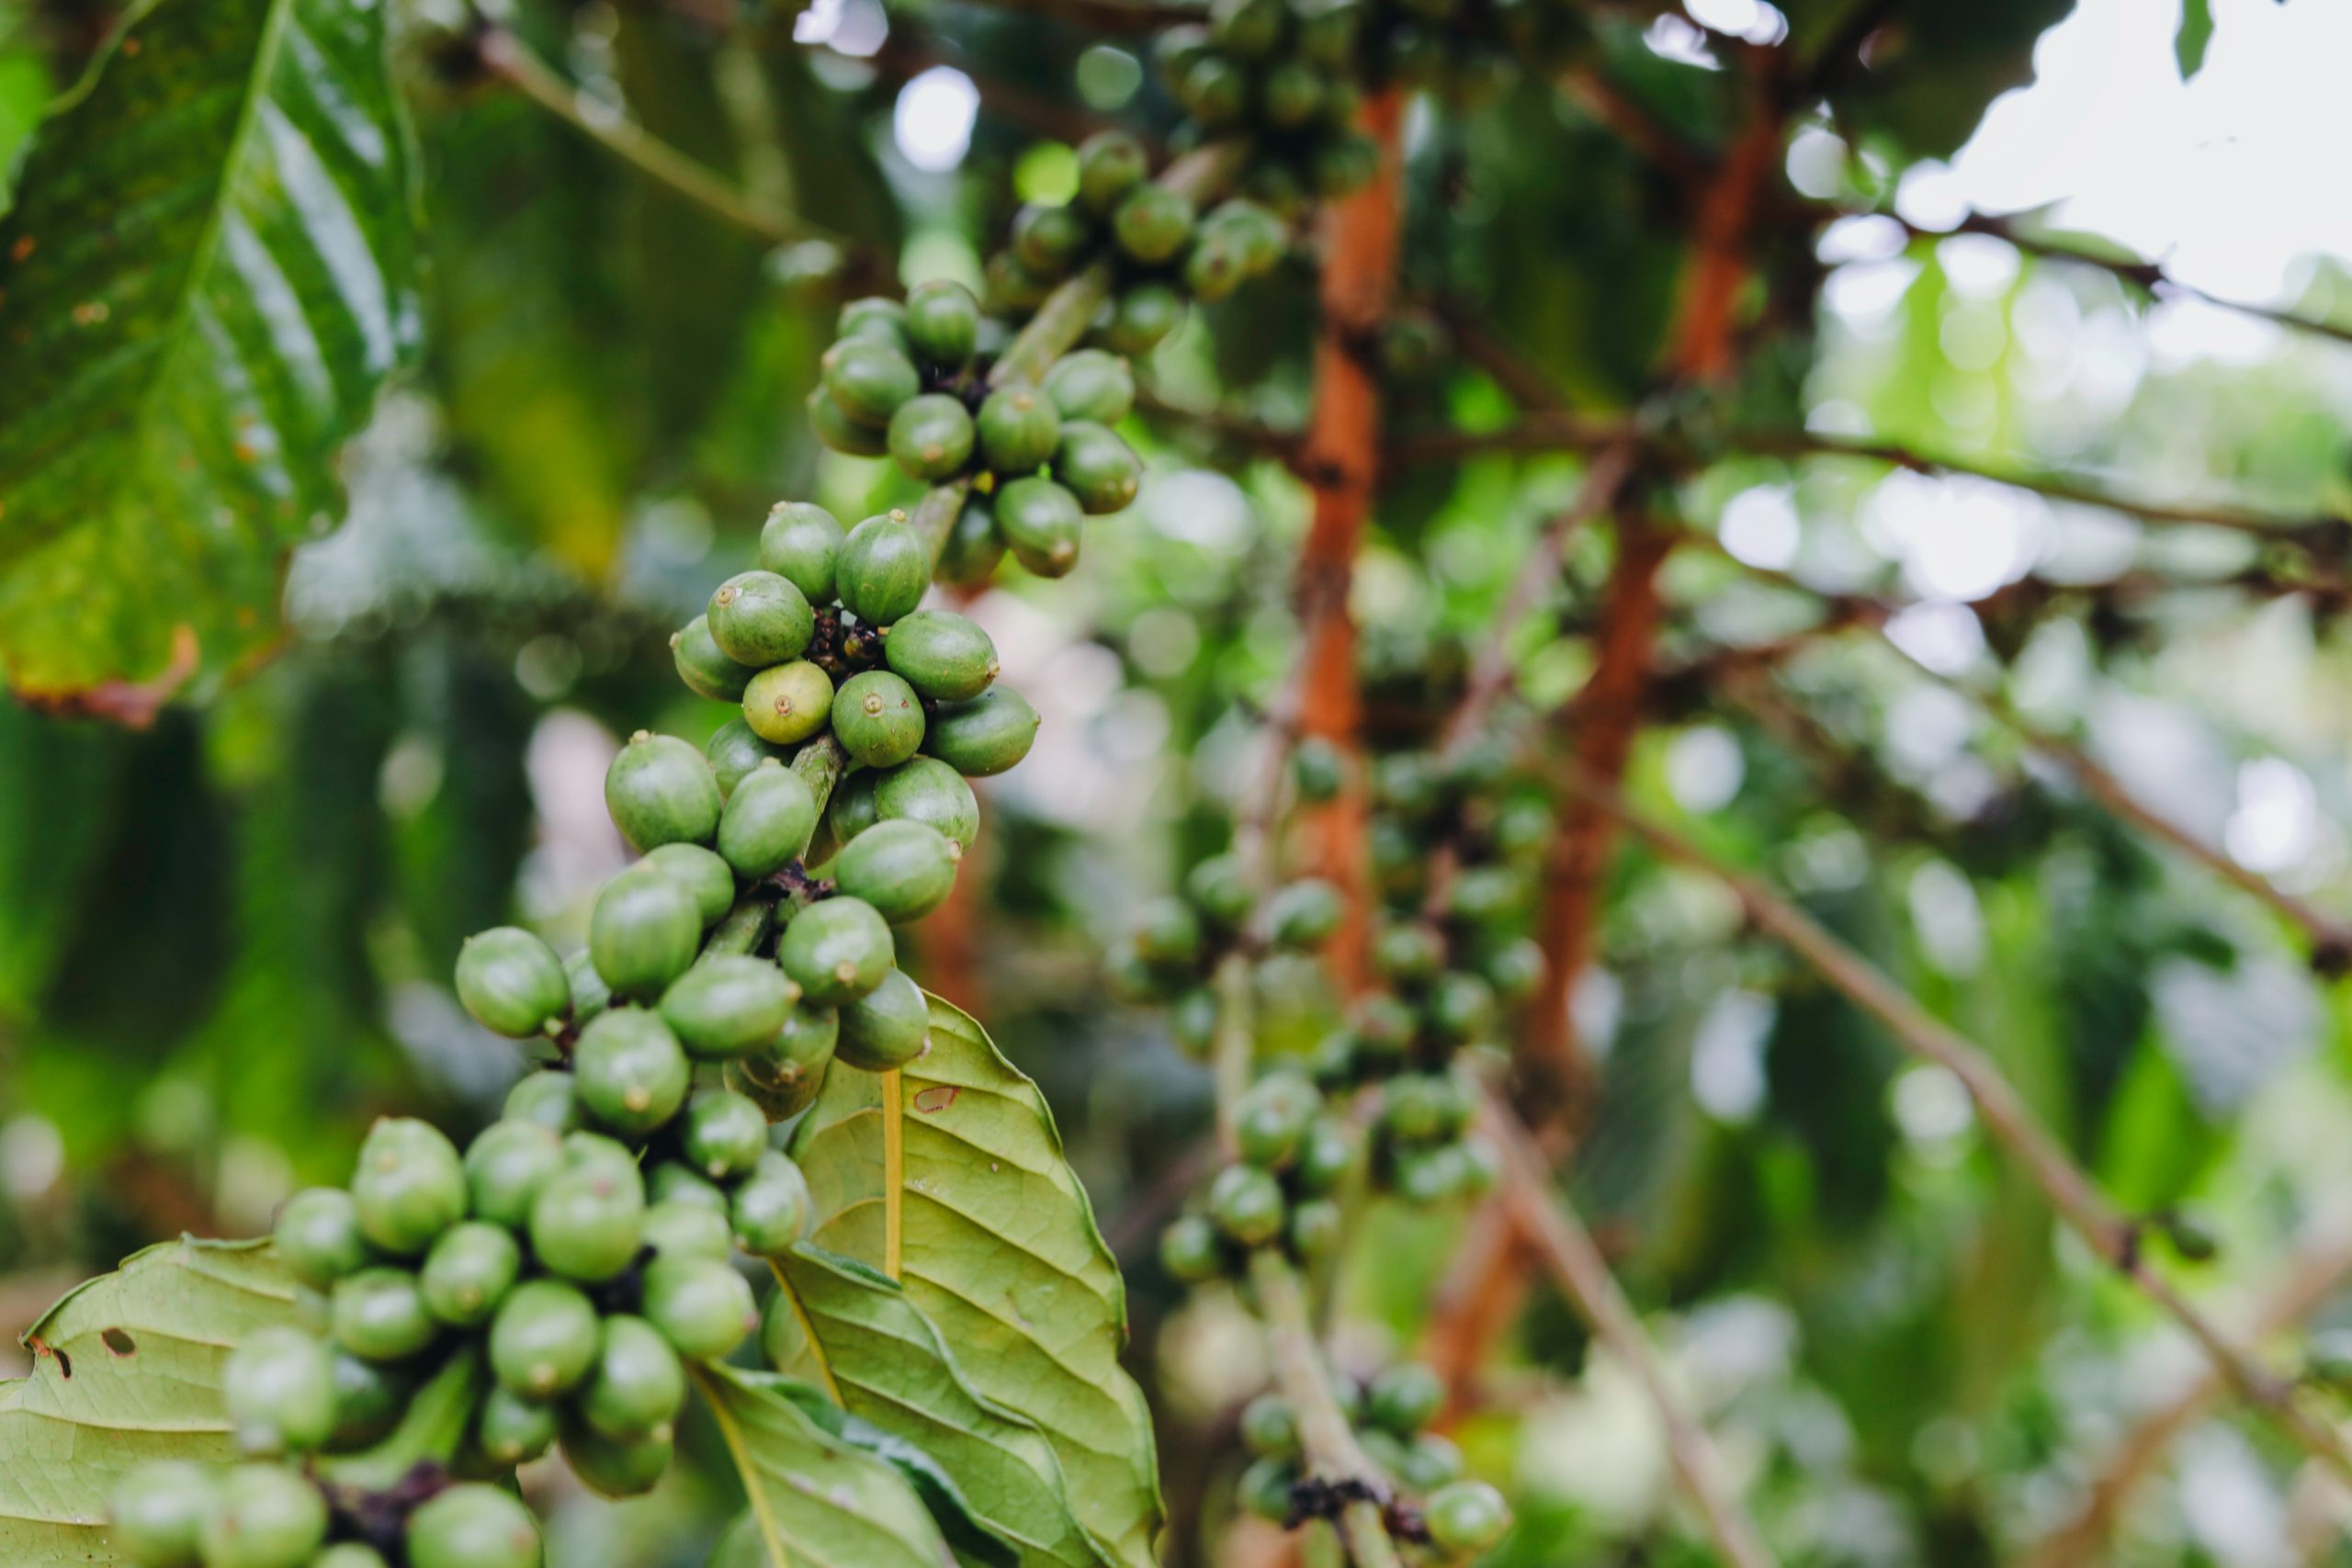 green coffee cherries on a coffee plant